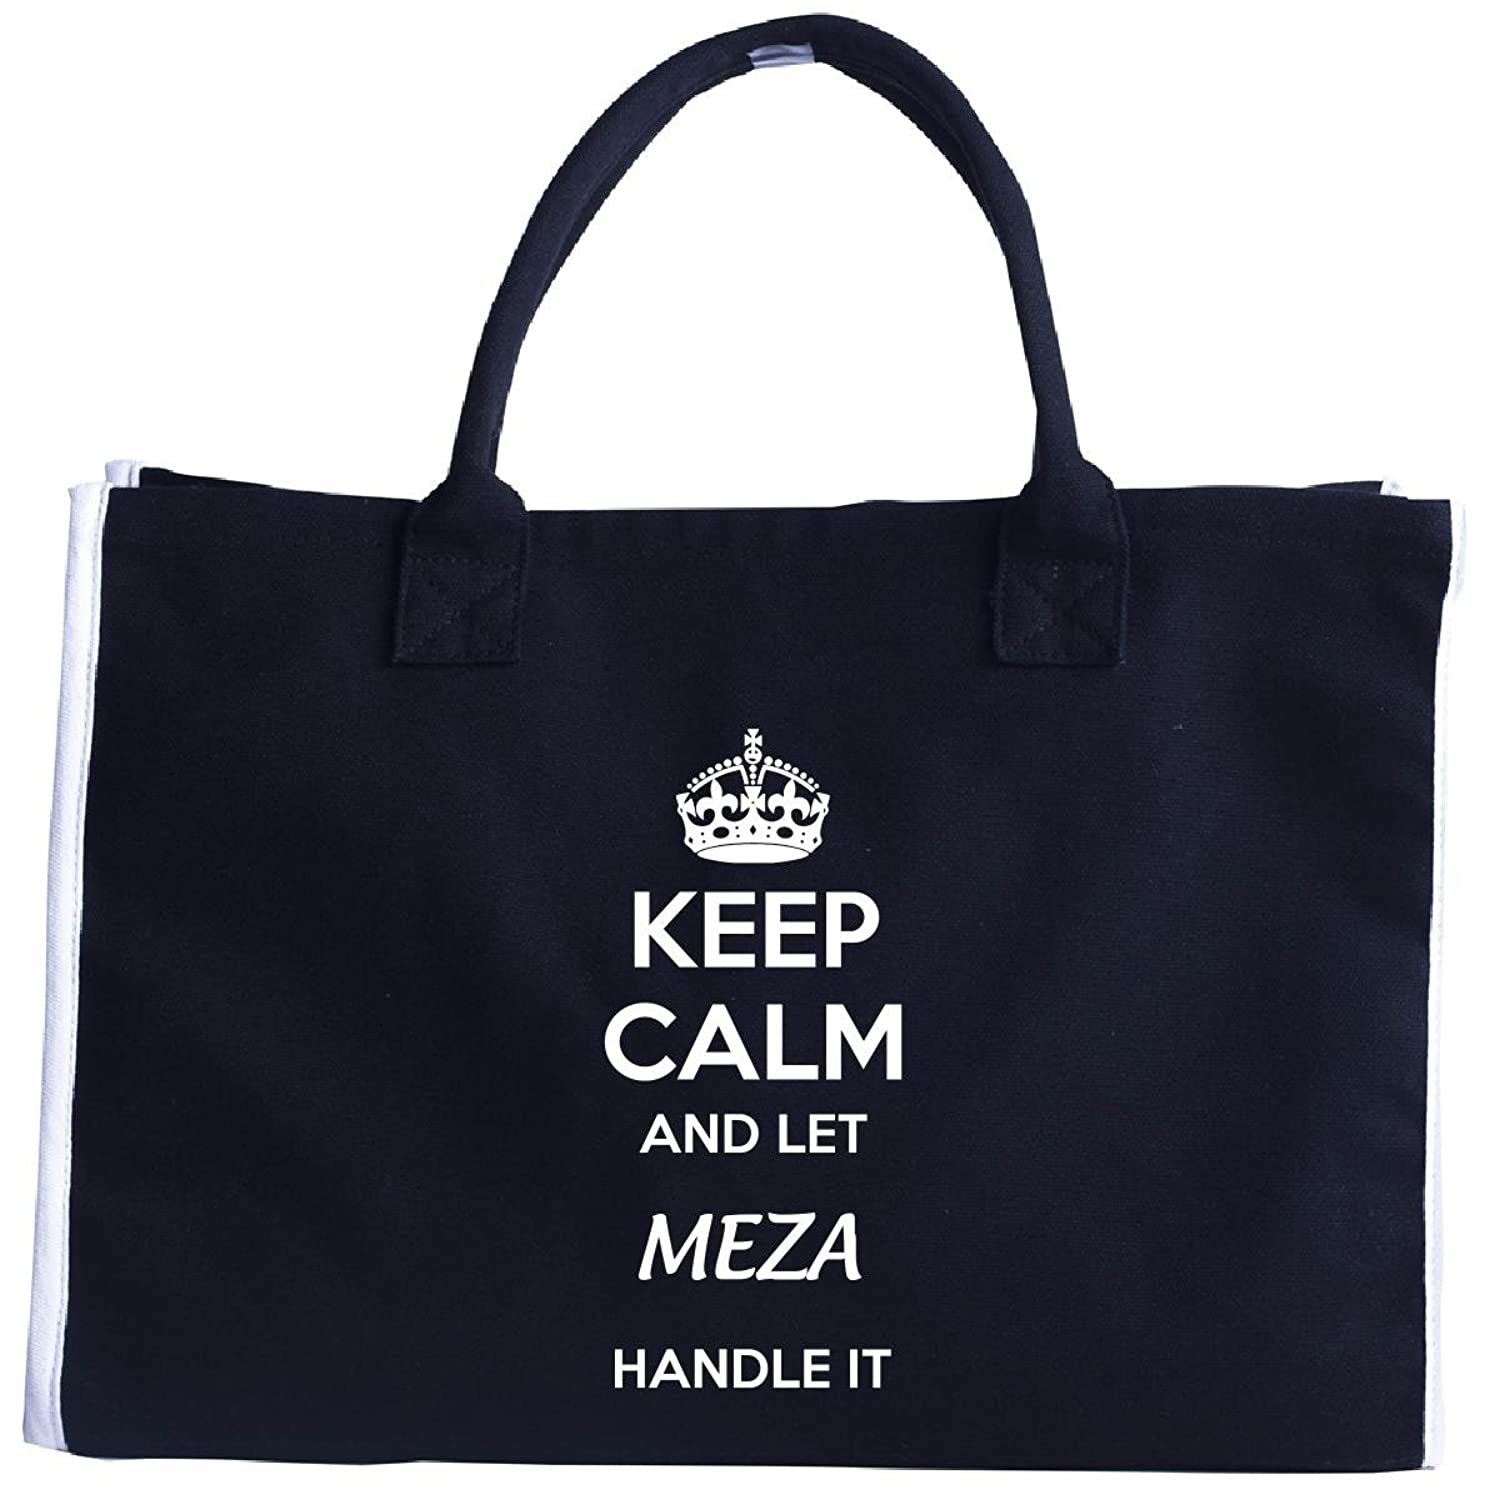 Keep Calm And Let Meza Handle It - Tote Bag